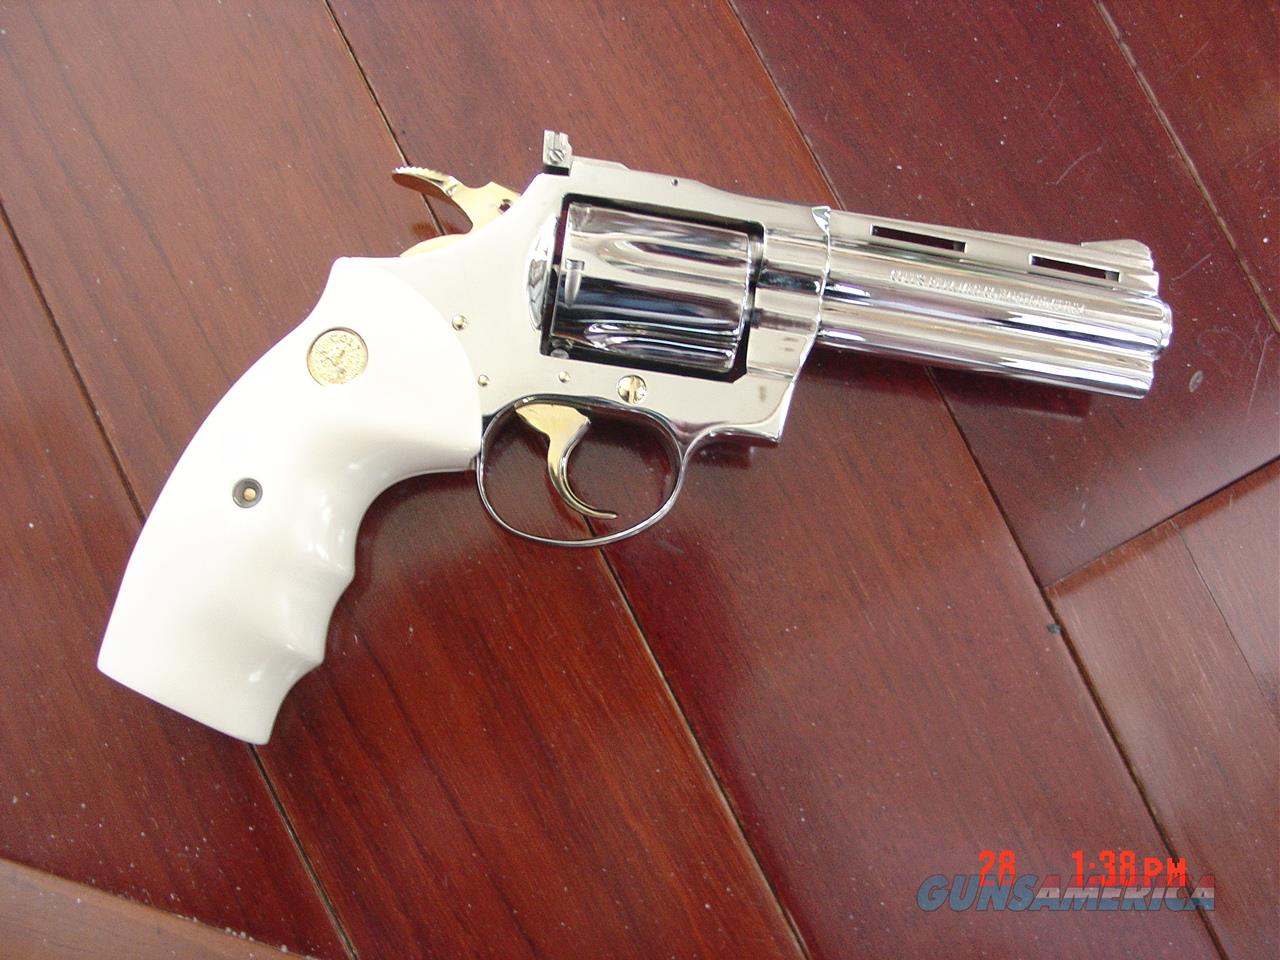 "Colt Diamondback 4"",38 spl,made in 1968,fully refinished in bright mirror nickel with 24k gold accents,bonded ivory grips,awesome showpiece  Guns > Pistols > Colt Double Action Revolvers- Modern"